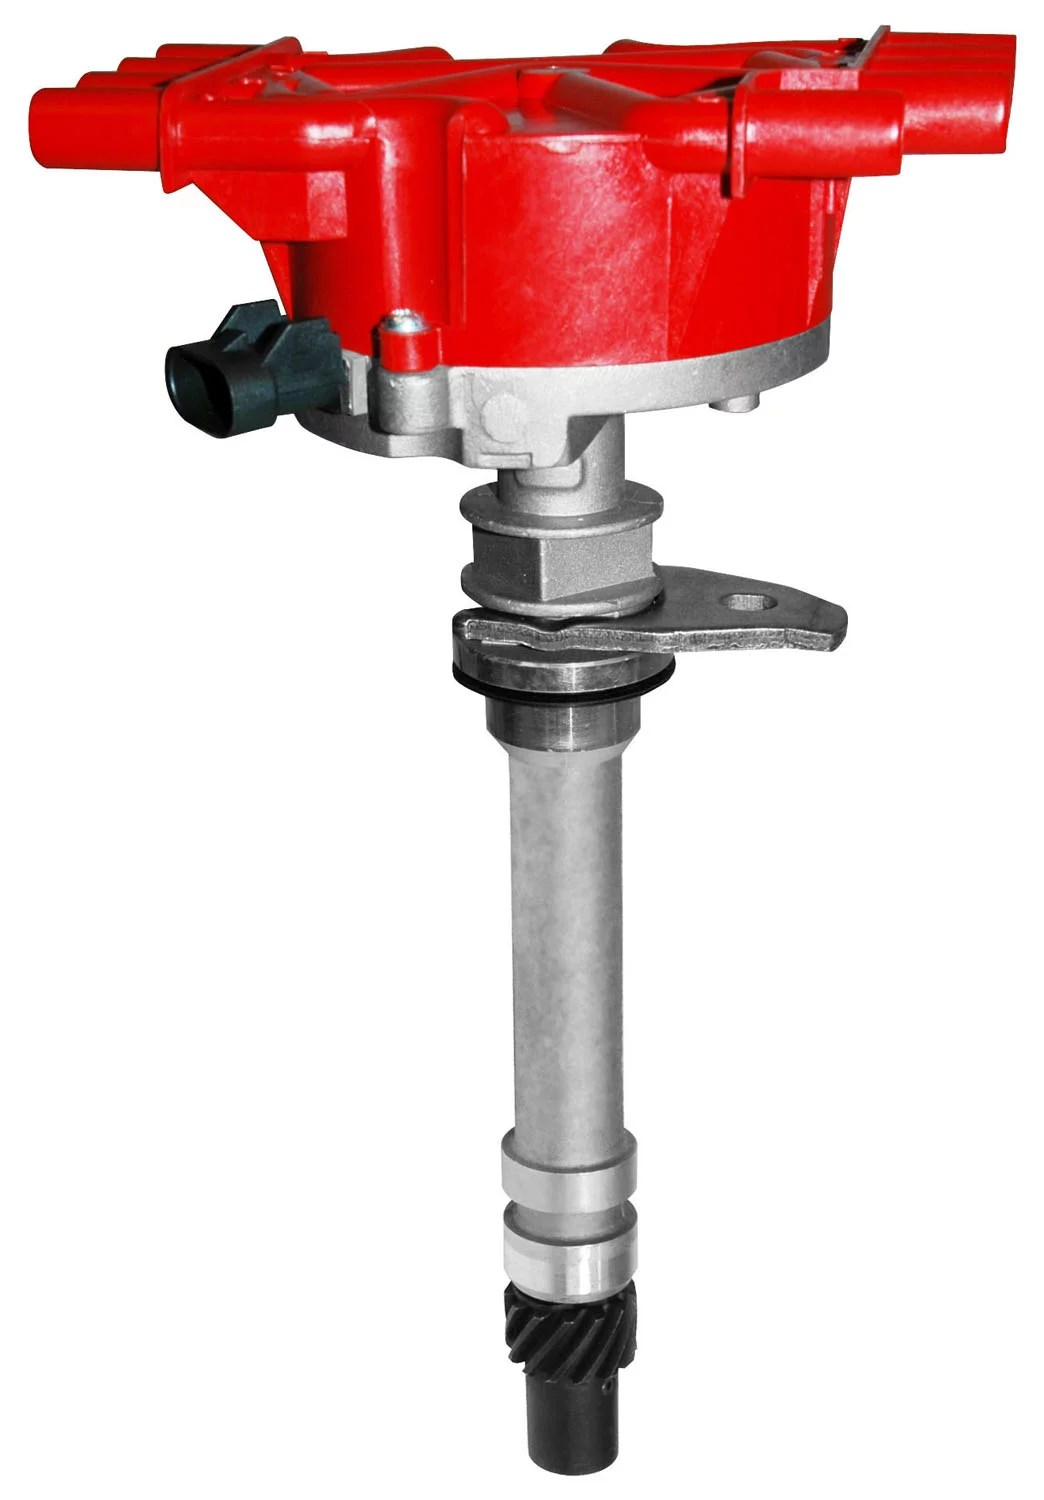 hight resolution of msd ignition 5592 distributor street fire for use with gm vortec engines without ignition control module magnetic trigger locked out timing